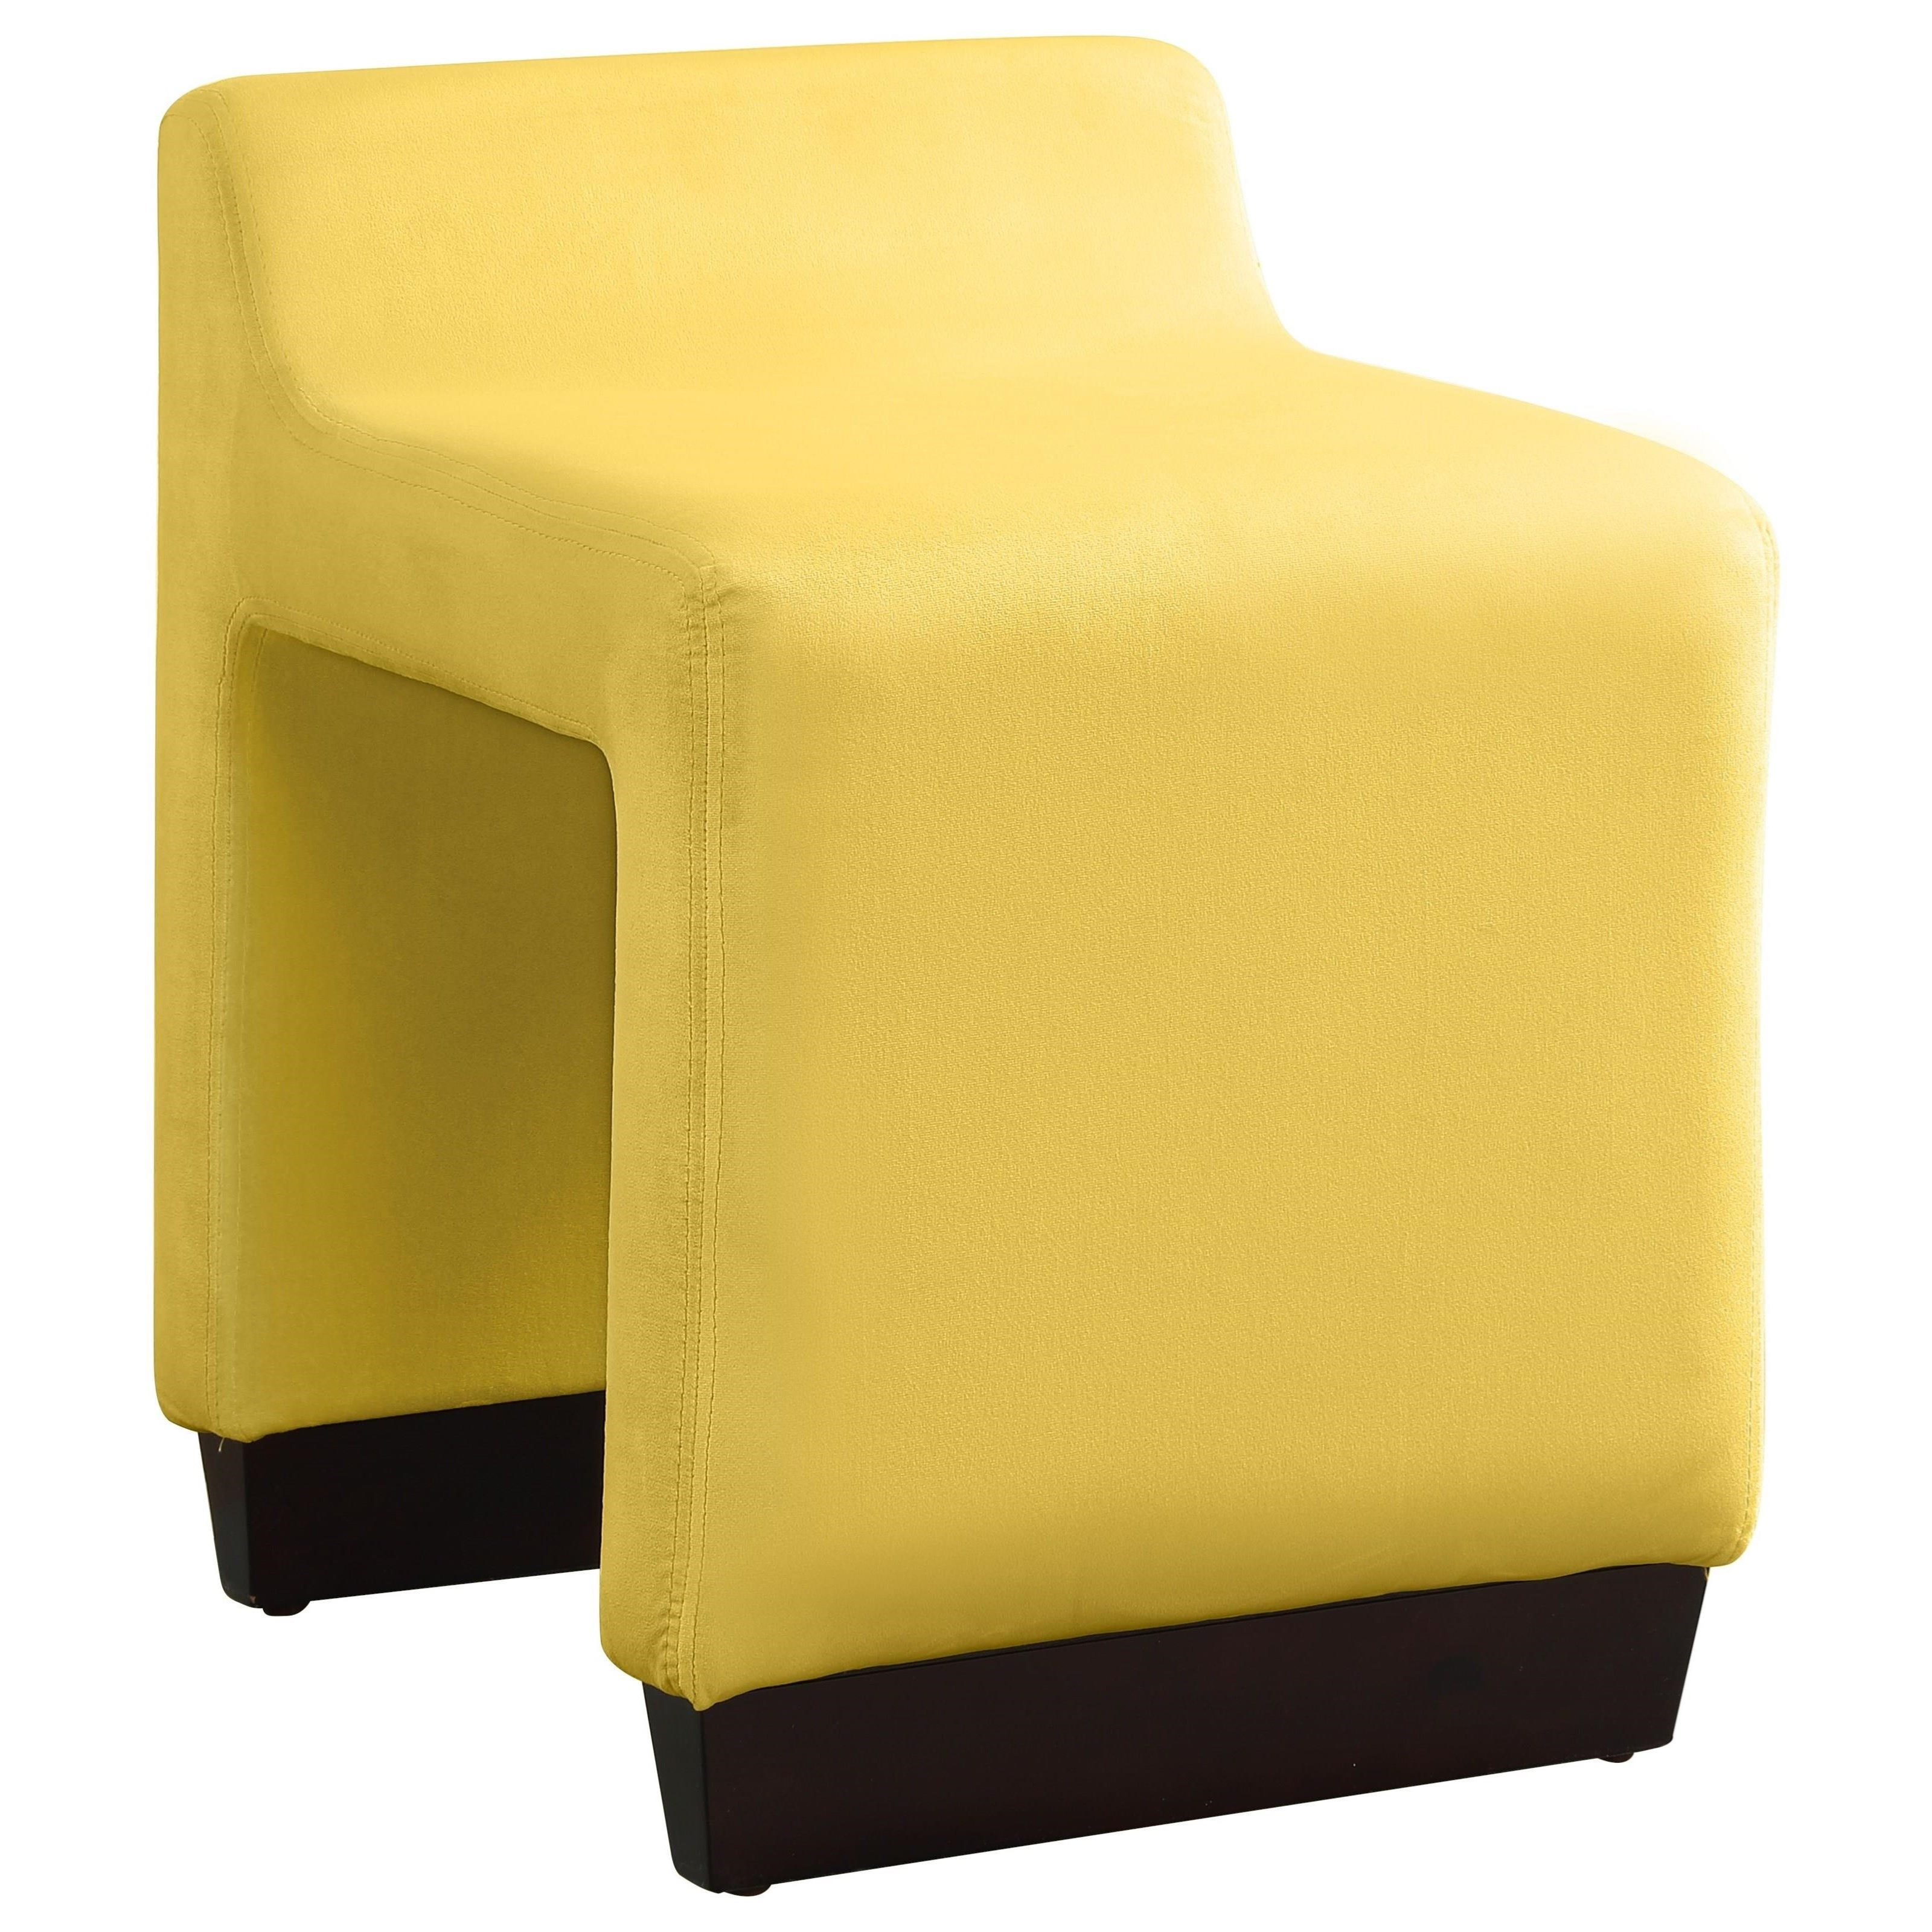 Alford Ottoman by Acme Furniture at A1 Furniture & Mattress